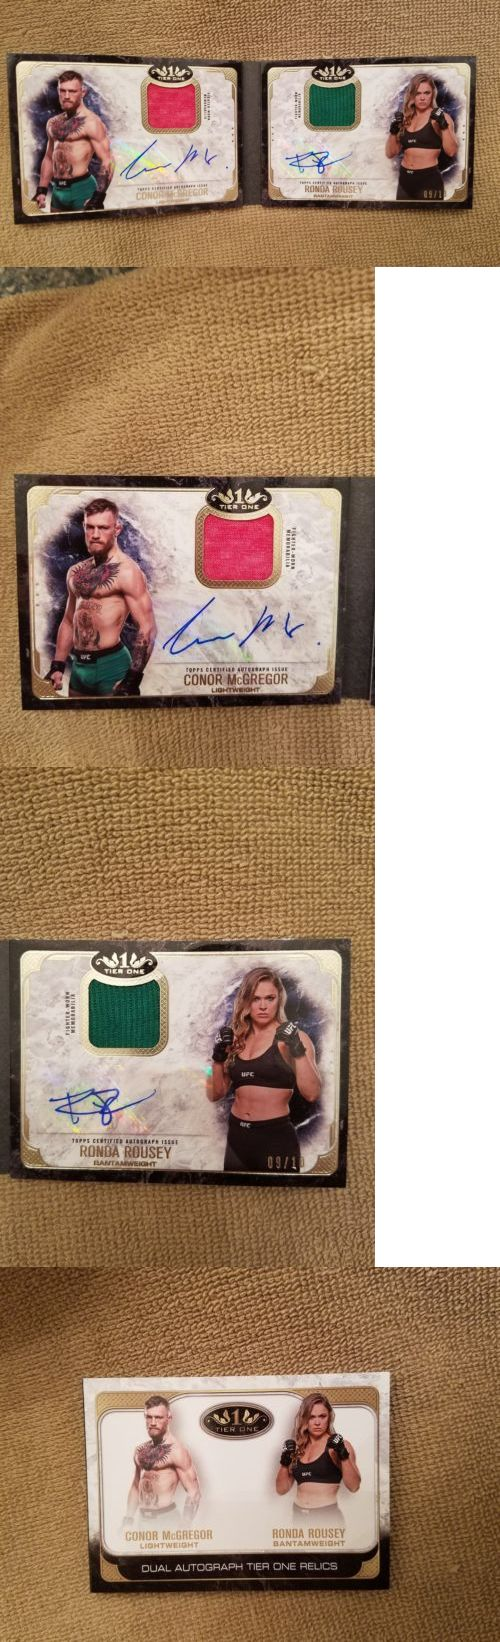 Mixed Martial Arts MMA Cards 170134: 17 Conor Mcgregor Ronda Rousey Autograph And Dual Relic Book Ufc Knockout 9 10 -> BUY IT NOW ONLY: $1499.99 on eBay!